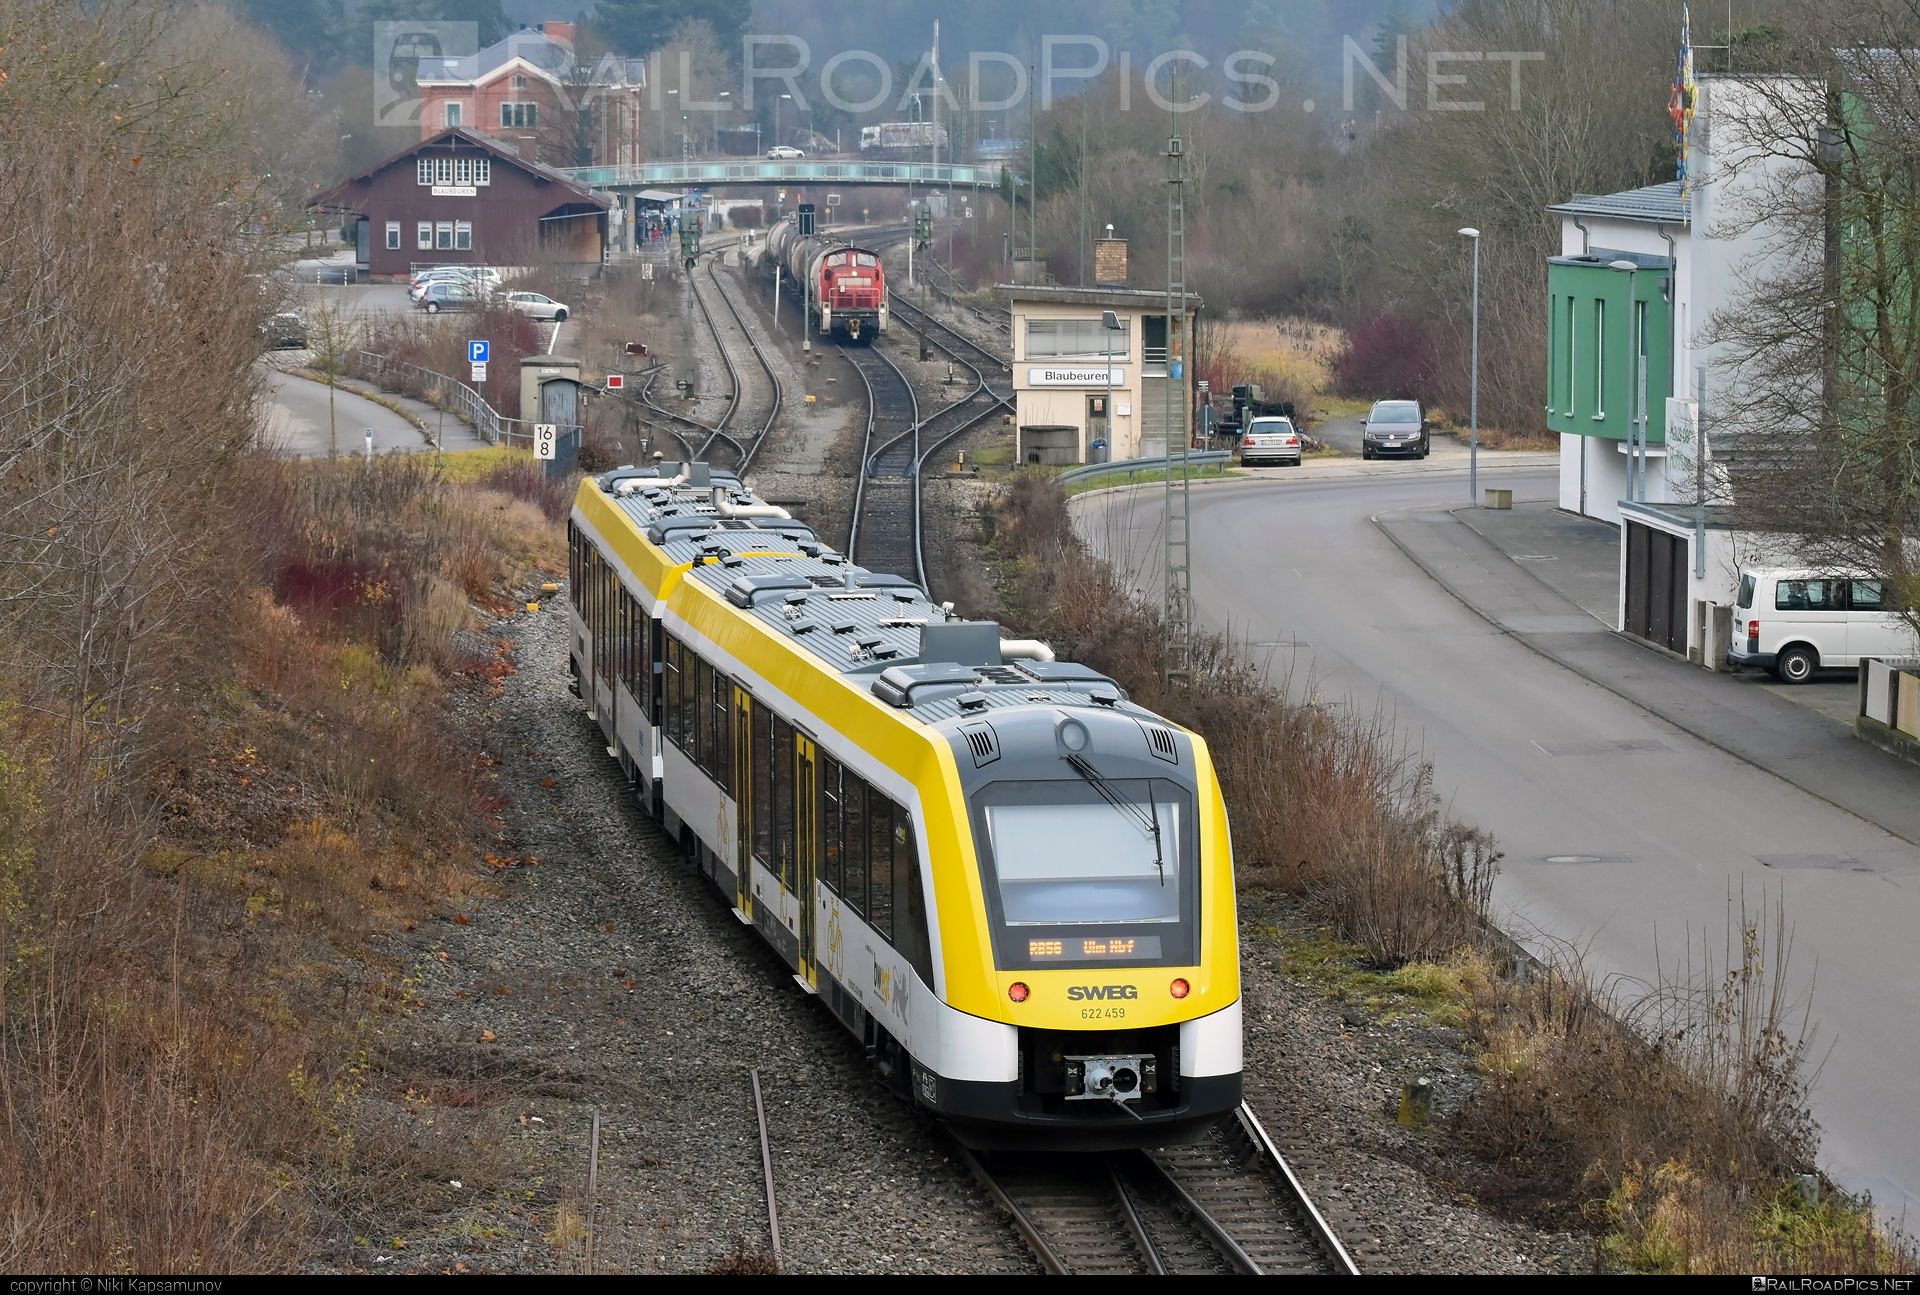 Alstom Coradia LINT 54 - 622 459 operated by Südwestdeutsche Landesverkehrs-AG #alstom #alstomcoradia #alstomcoradialint #alstomcoradialint54 #coradialint54 #sweg